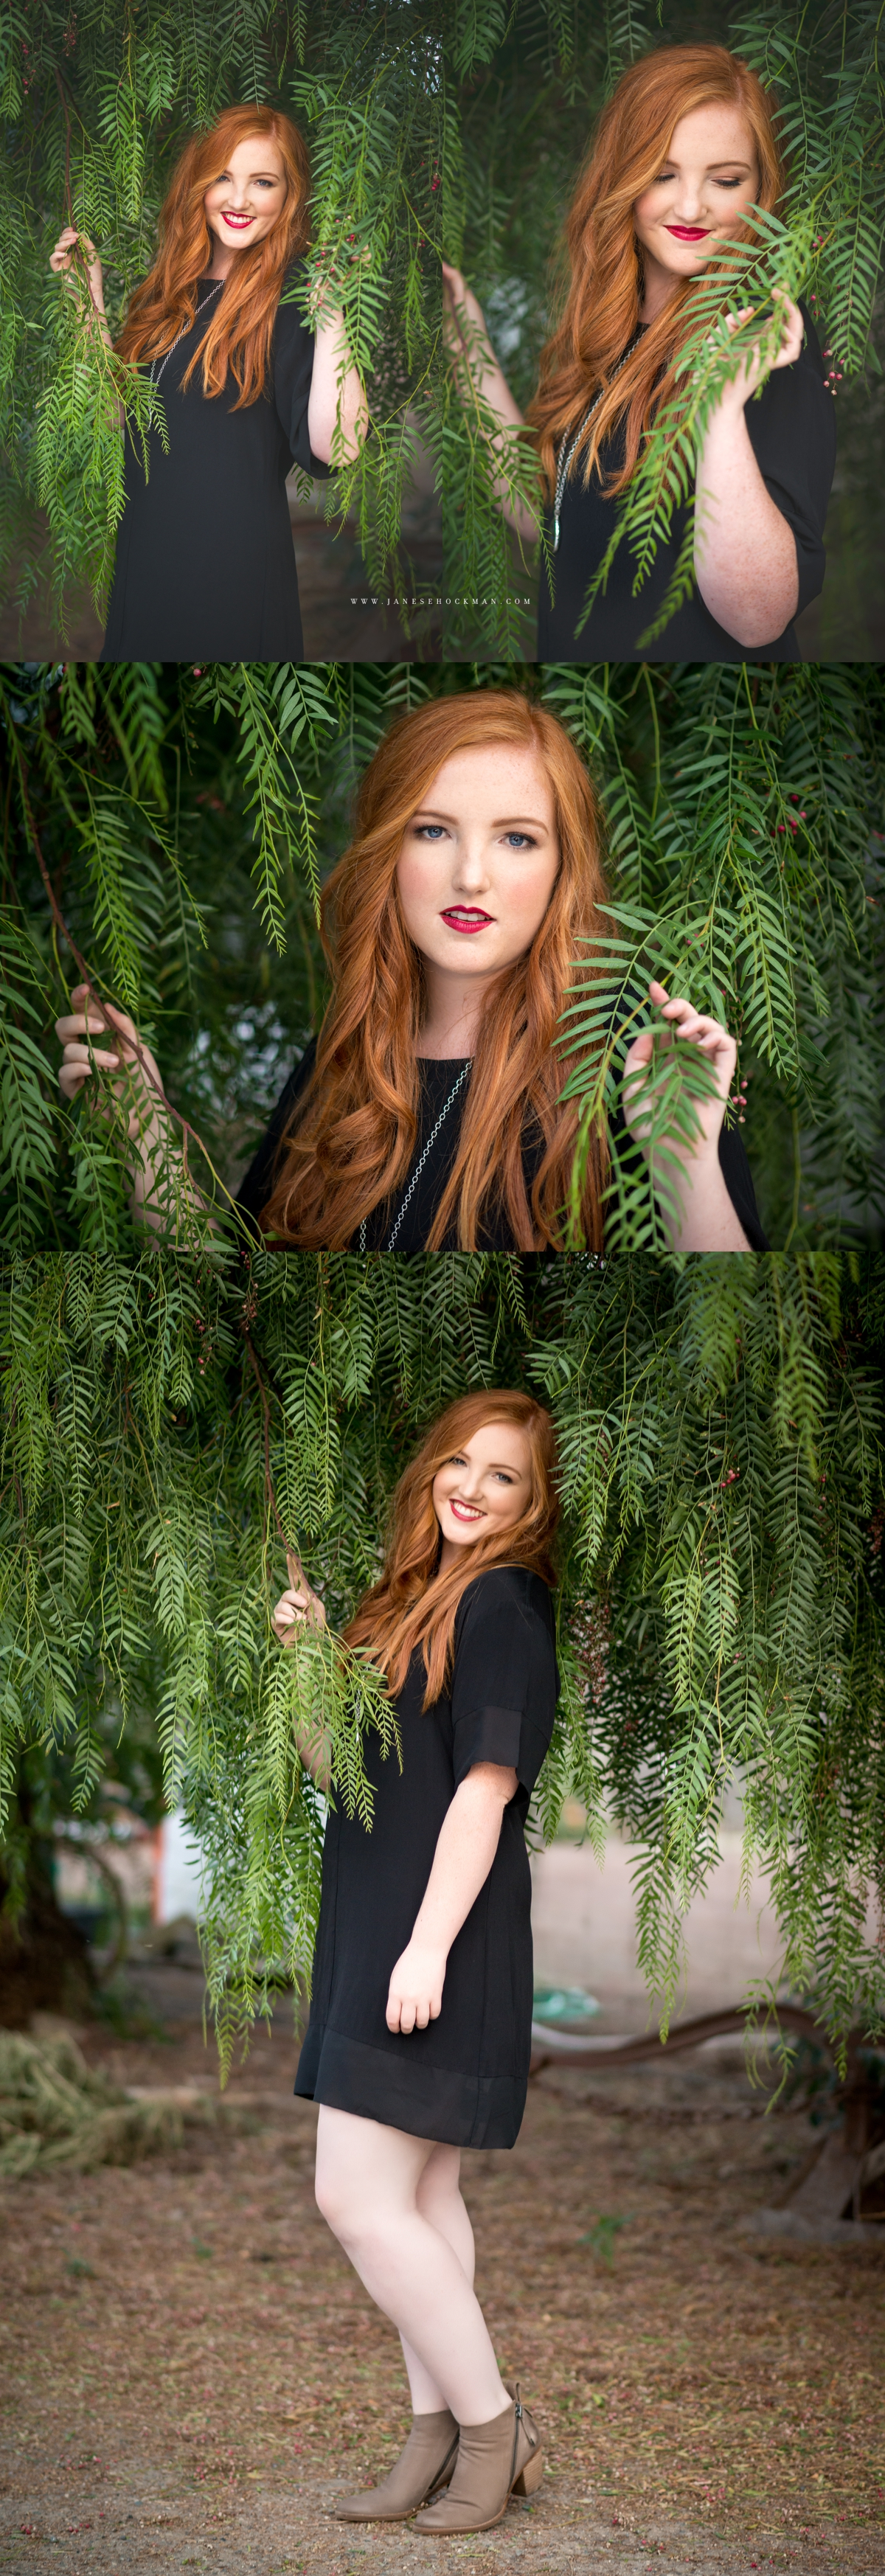 Grace-Janese Hockman Photography San Luis Obispo High School Senior Portraits 8.jpg